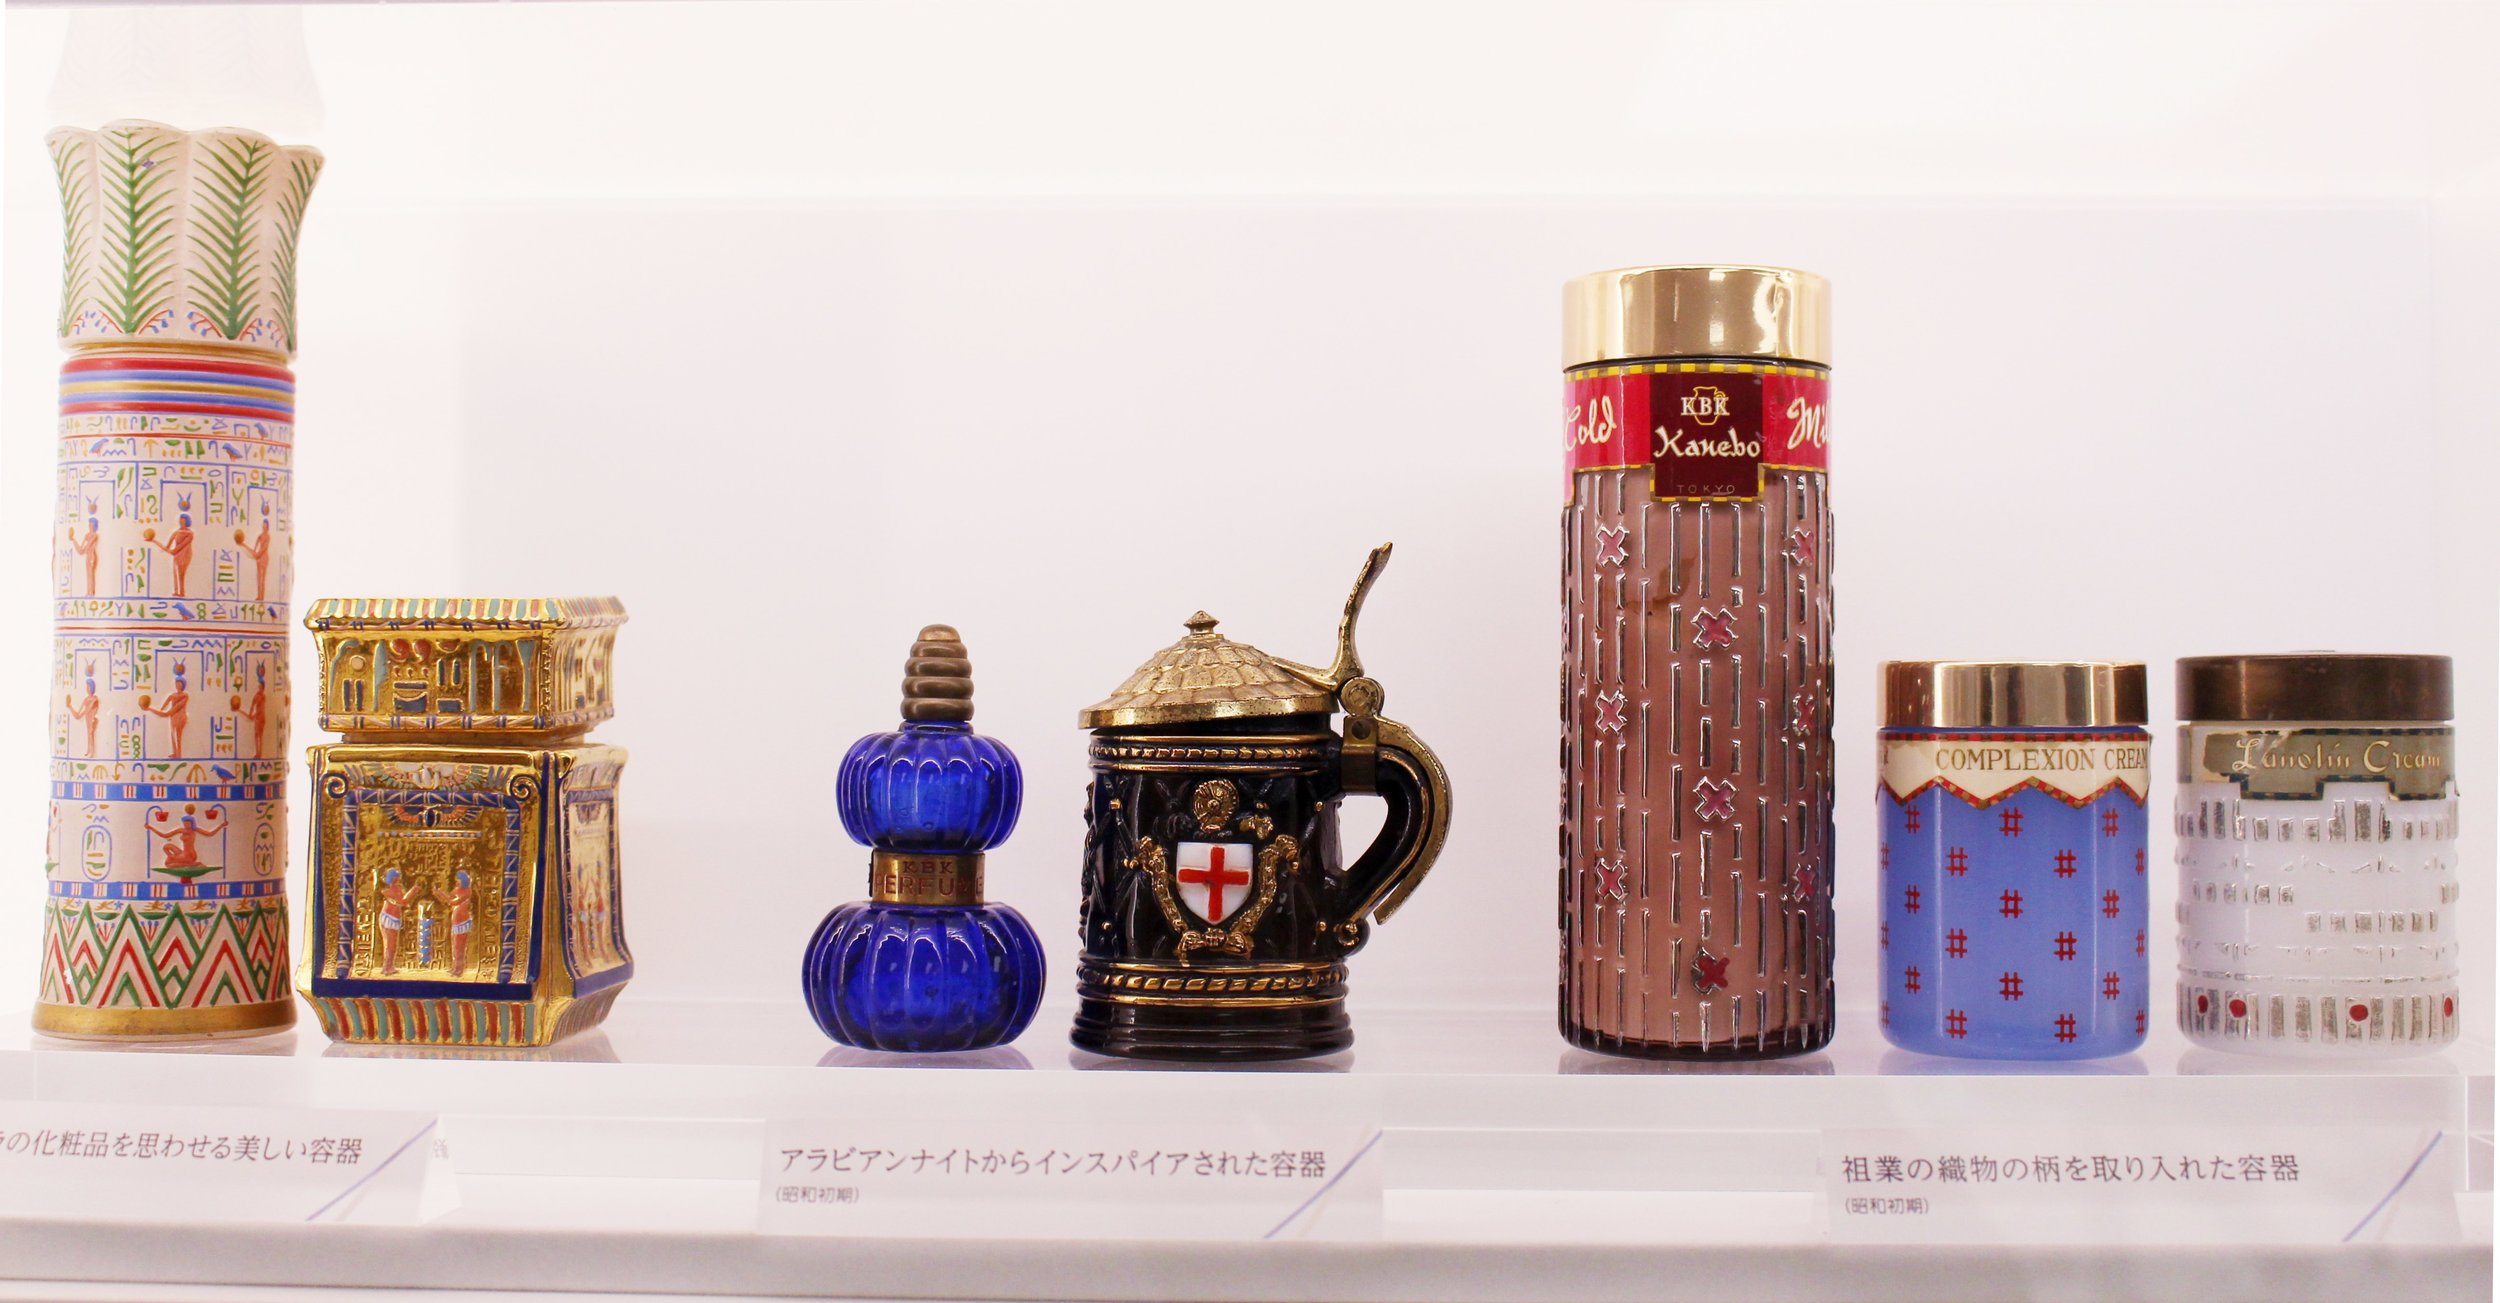 Vintage Kanebo products on display at the Kao Museum